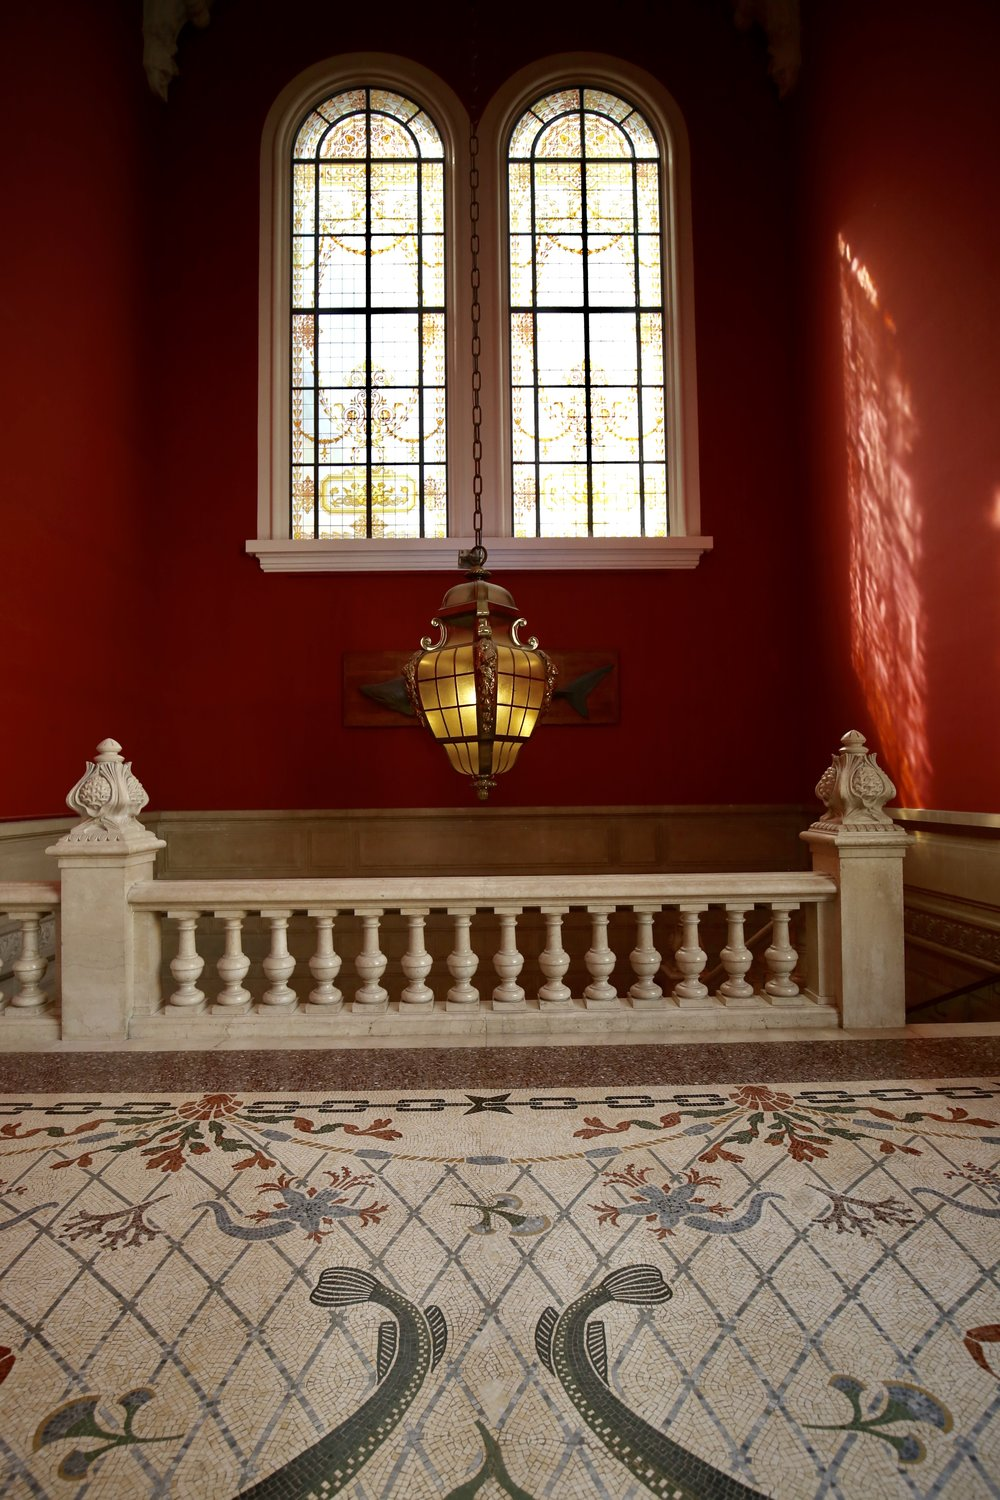 Tiled floors and drop lanterns in a grand entranceway to Monaco's museum.